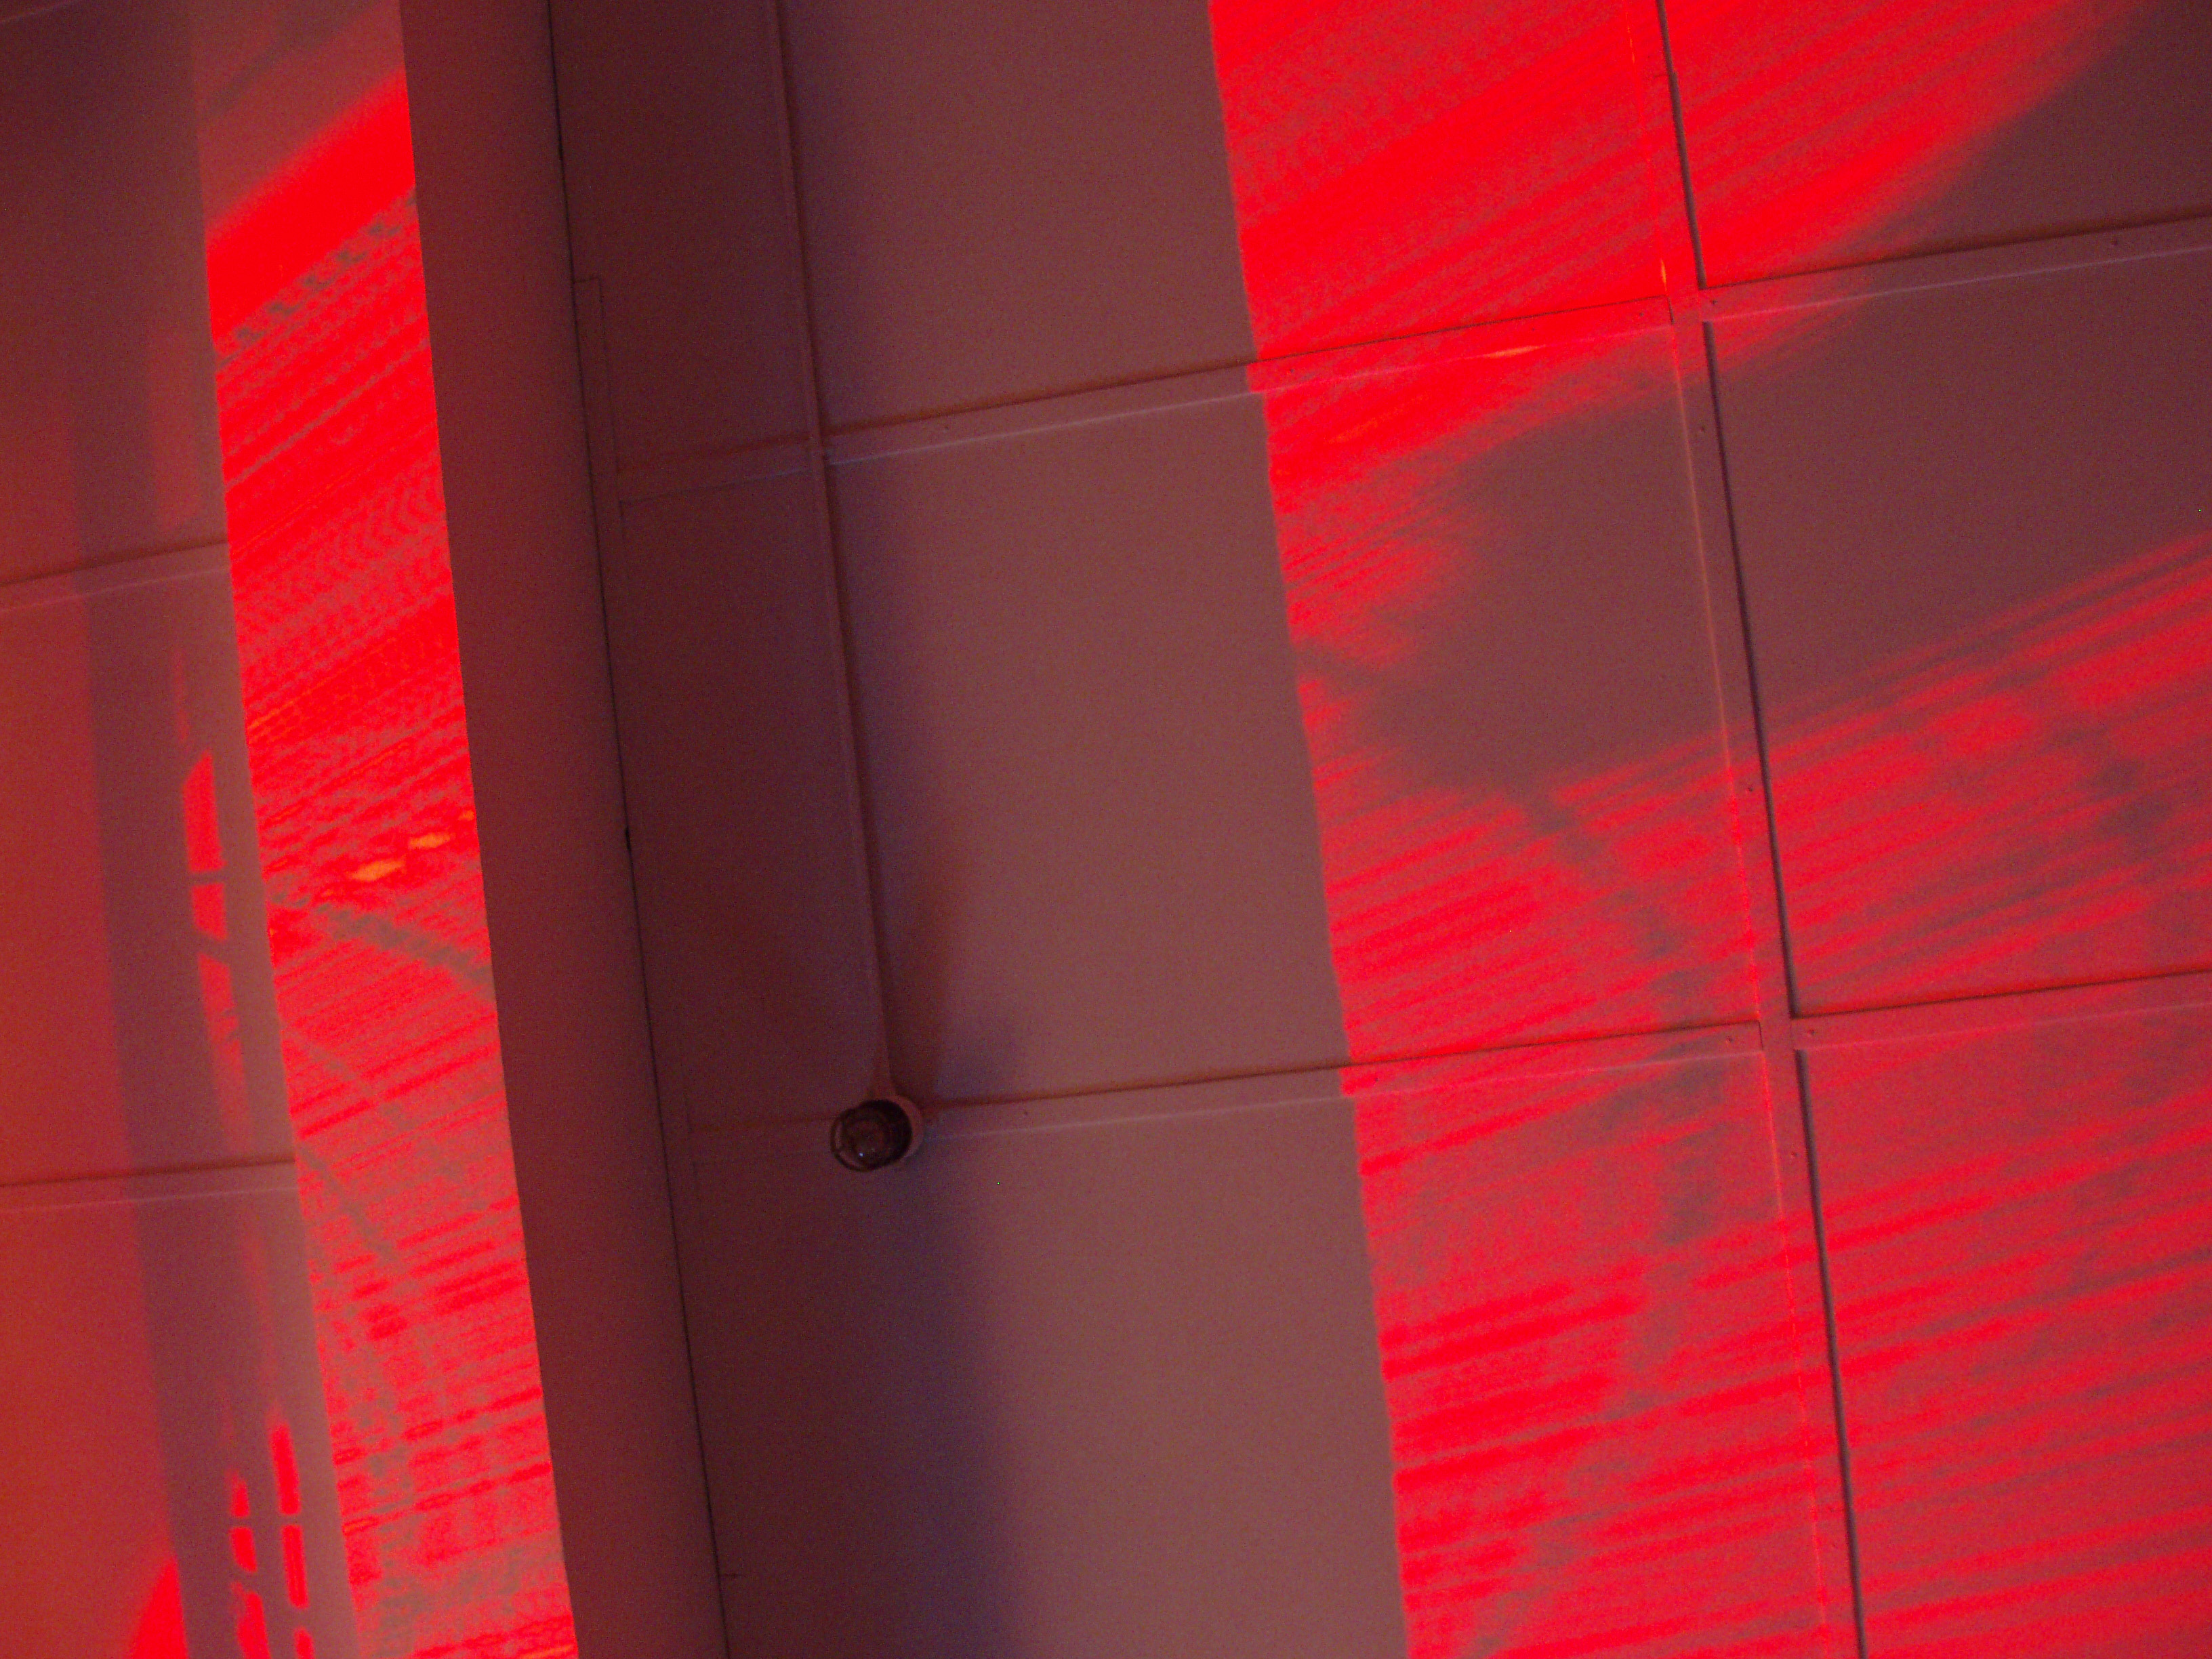 patterns on the ceiling made by a red light